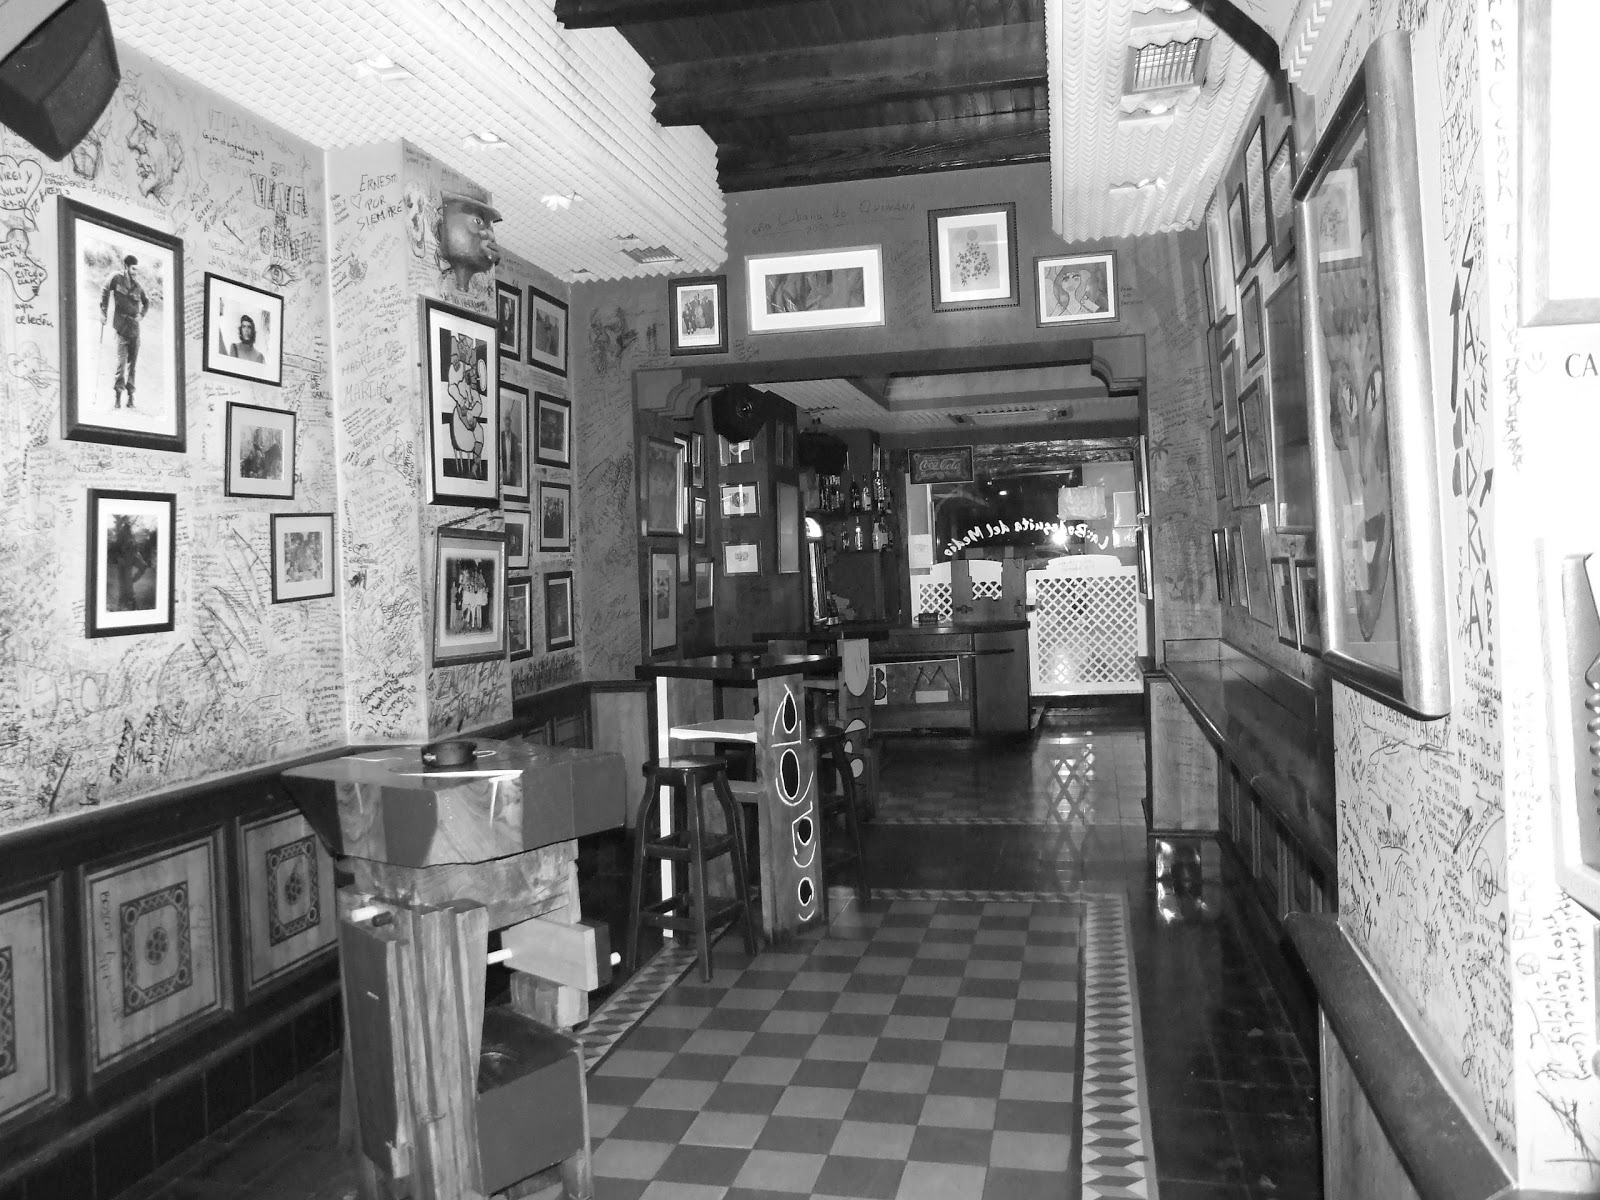 Interior of La Bodeguita del Medio in the 1950s